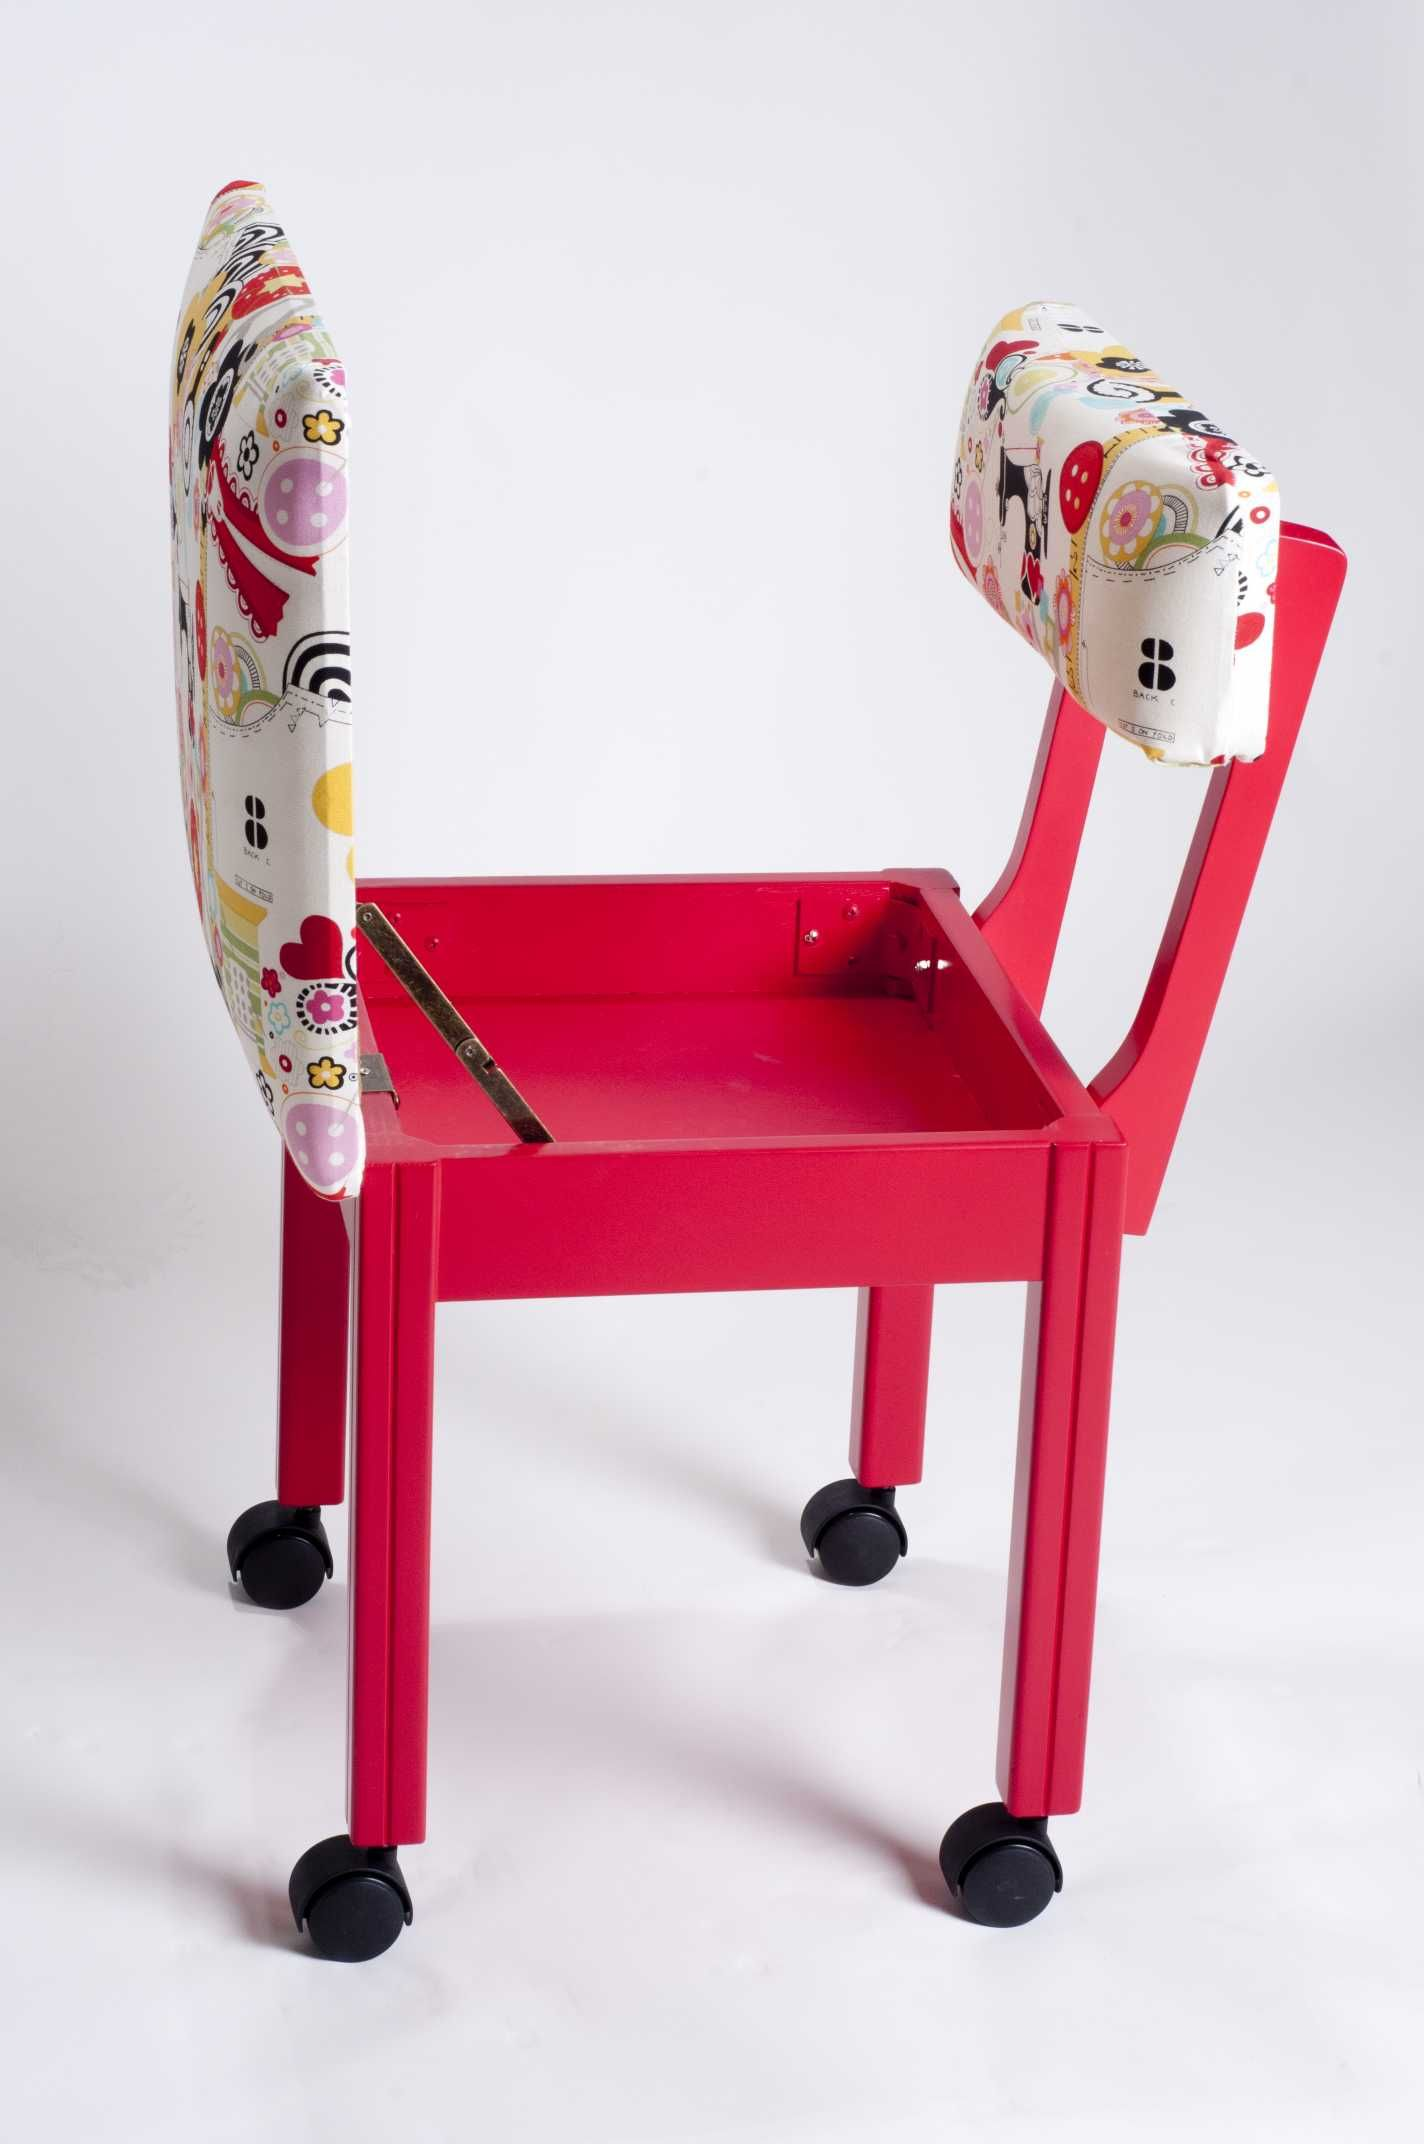 Sewing chair with lumbar support and secret hiding place storage